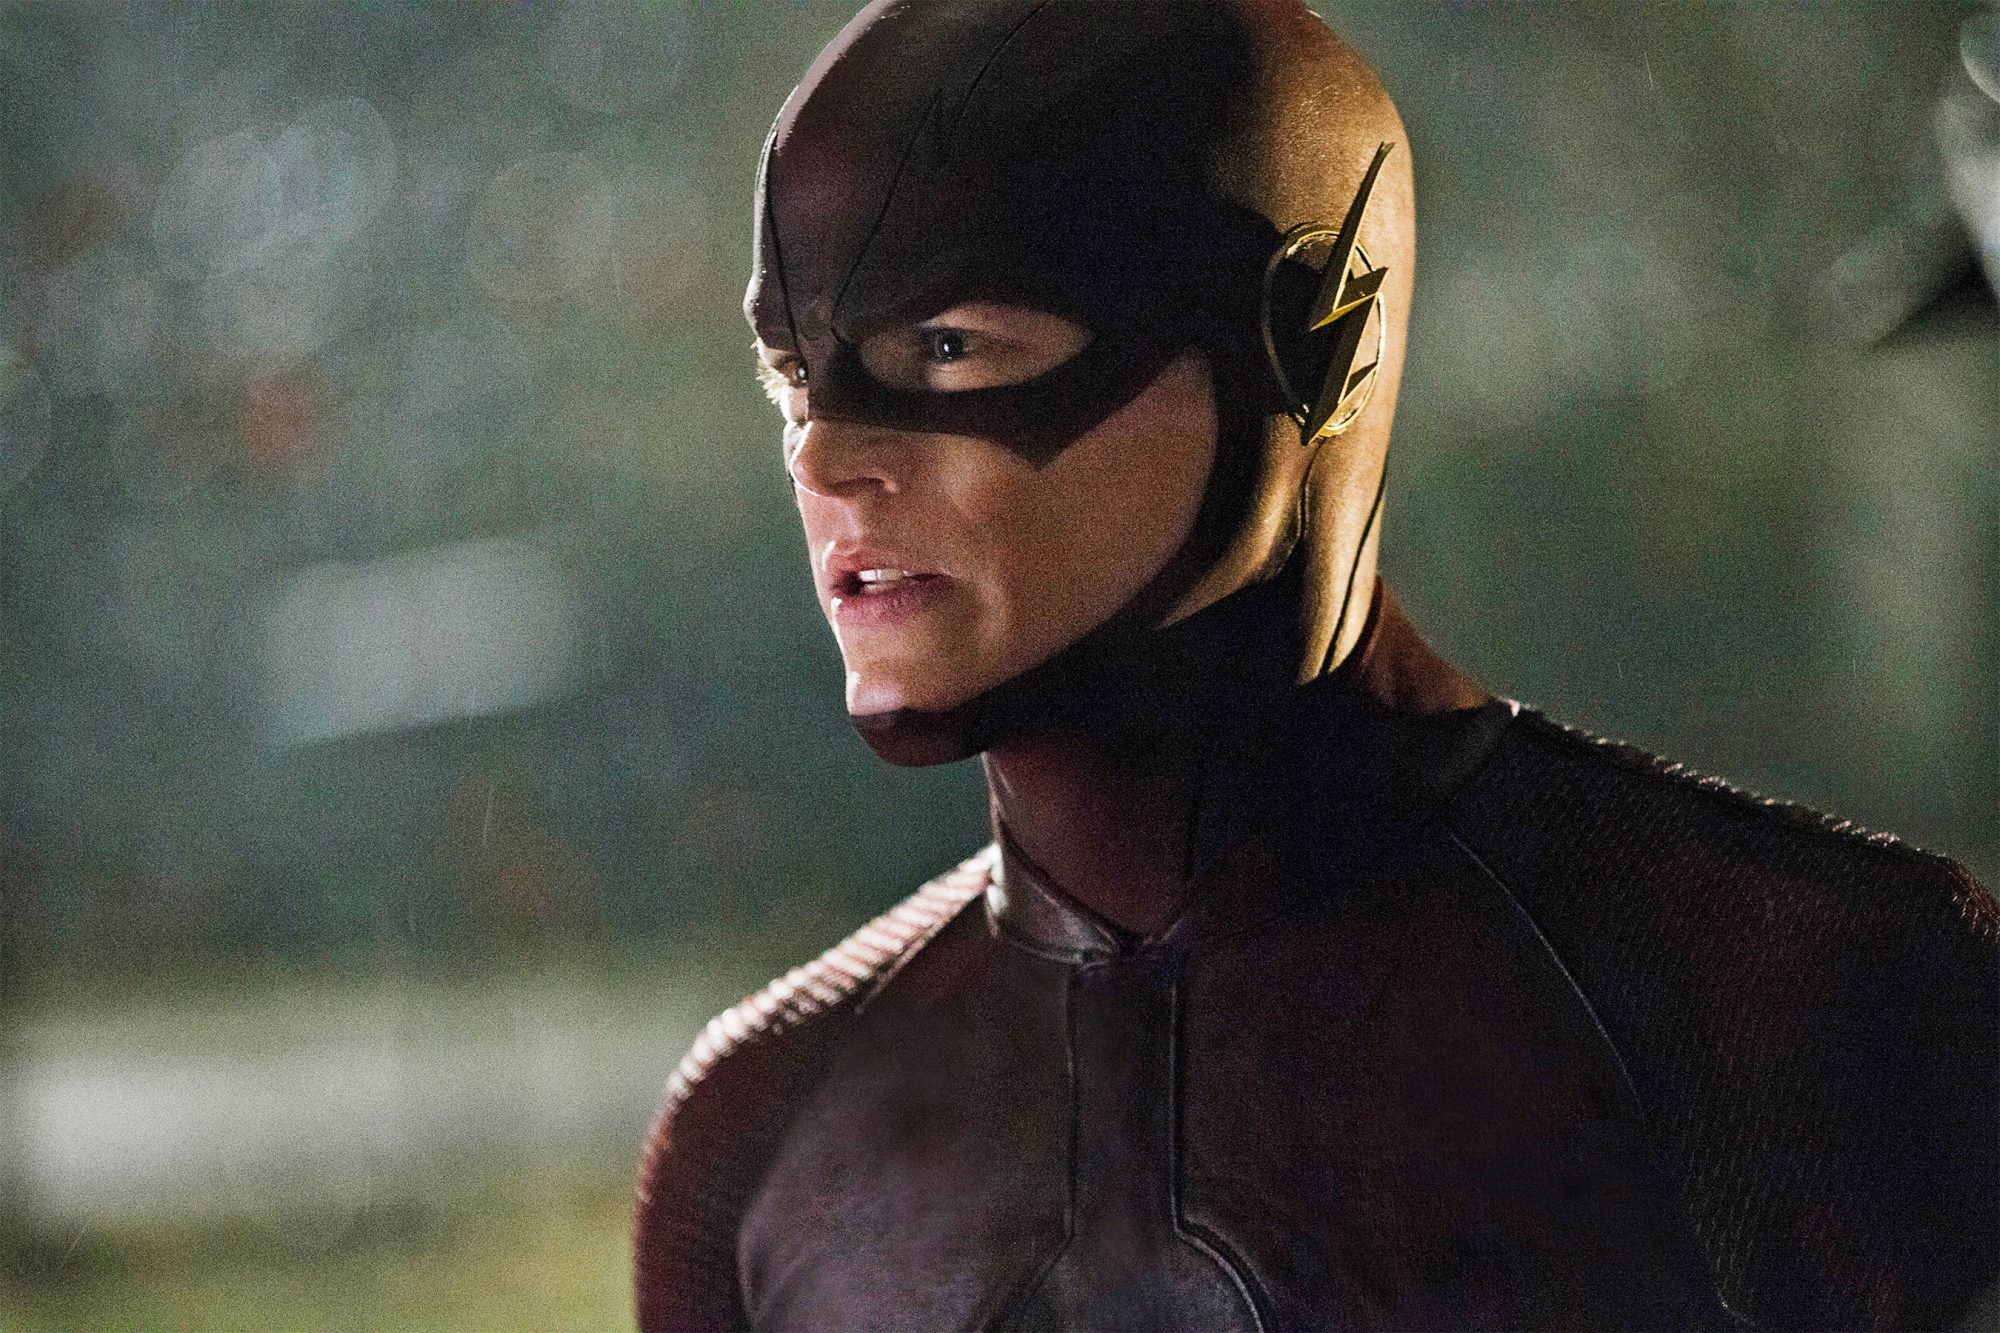 The Flash Pilot Pictured: Grant Gustin